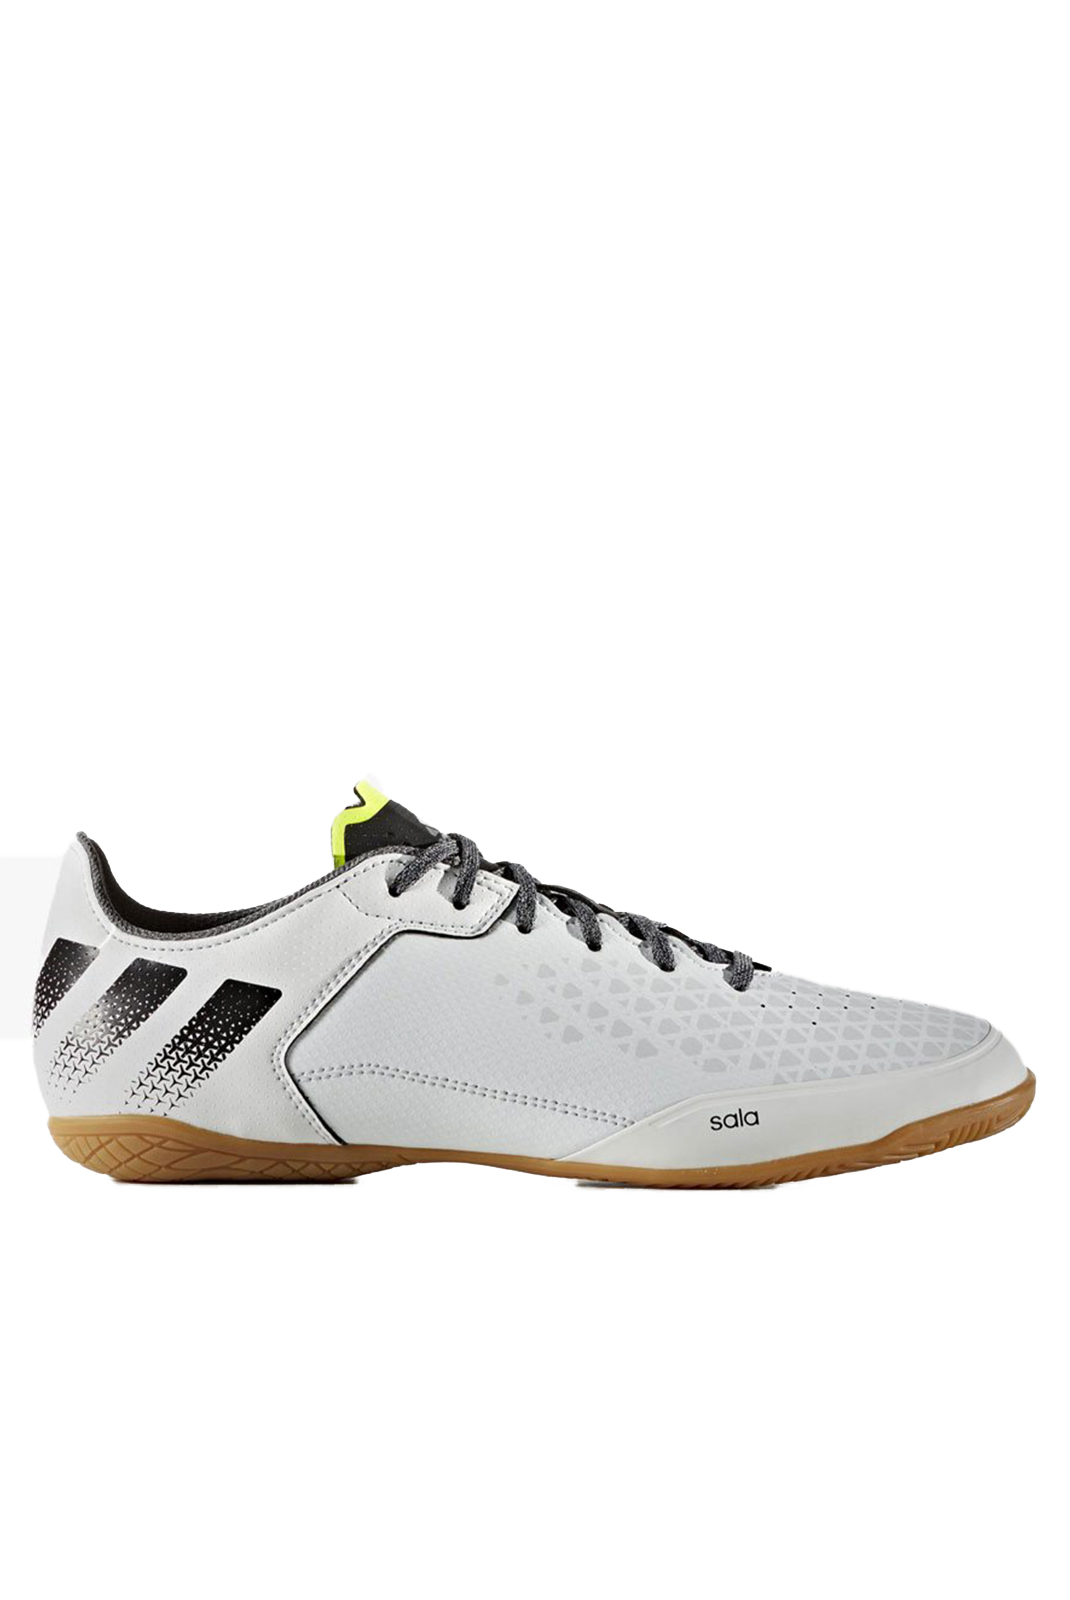 Baskets / Sport  Adidas S31941 ACE 16.3 COURT BLANC